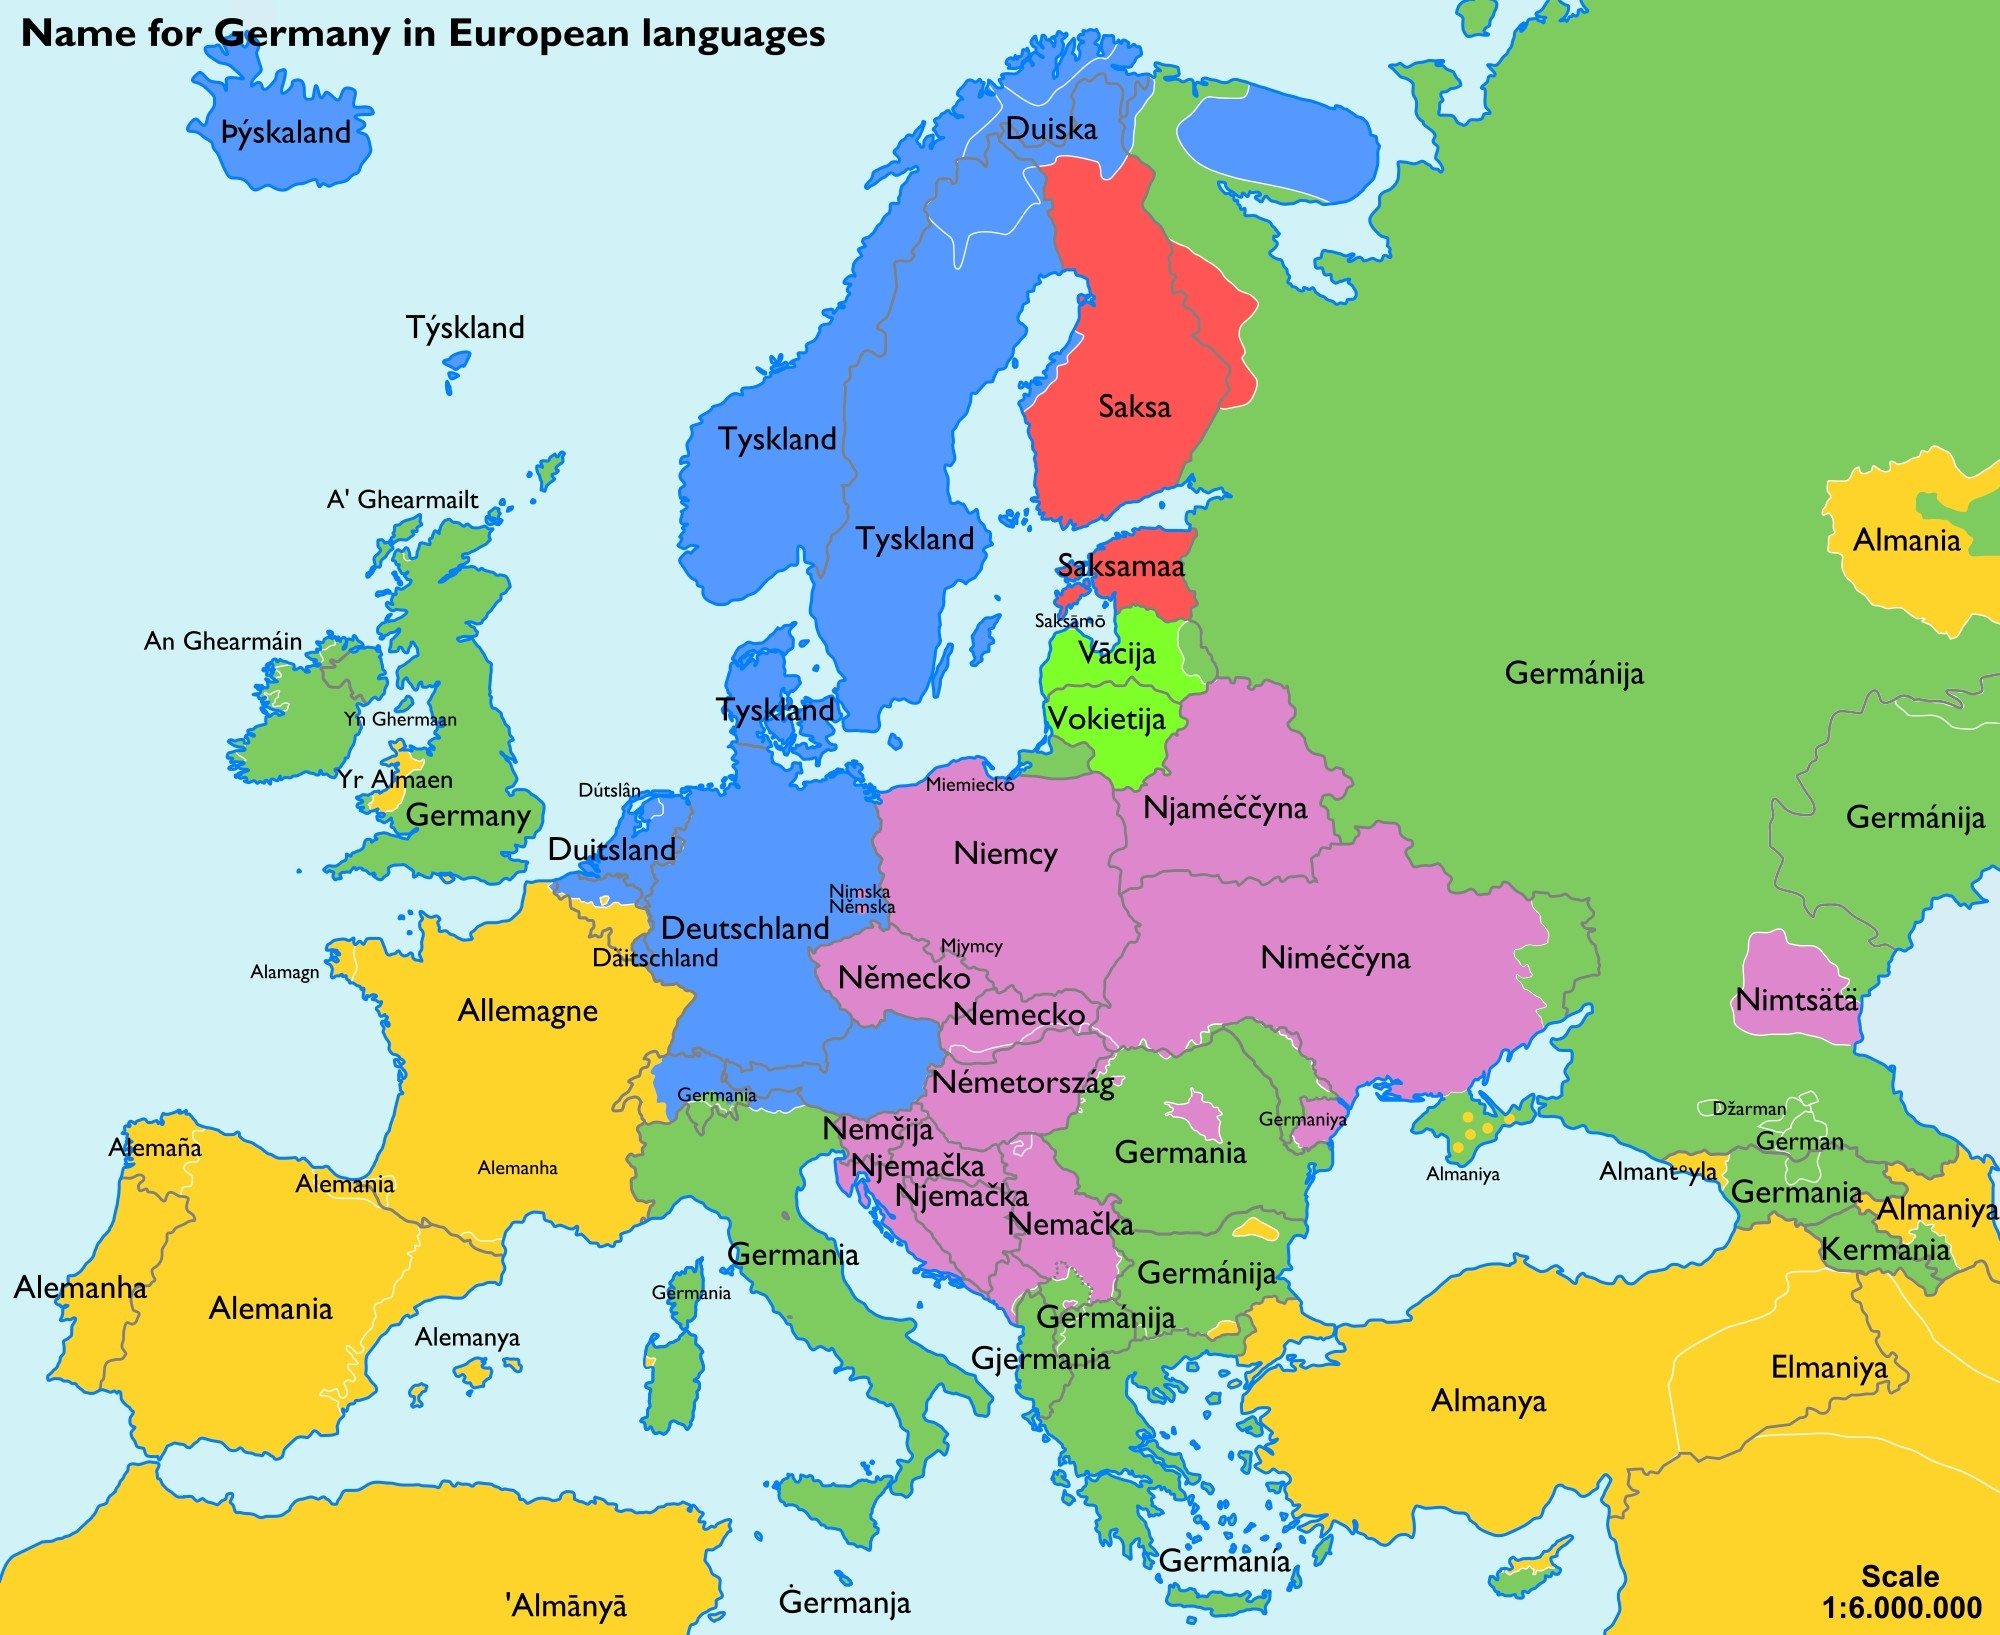 Germany Map Europe - World Wide Maps within Germany In Map Of Europe